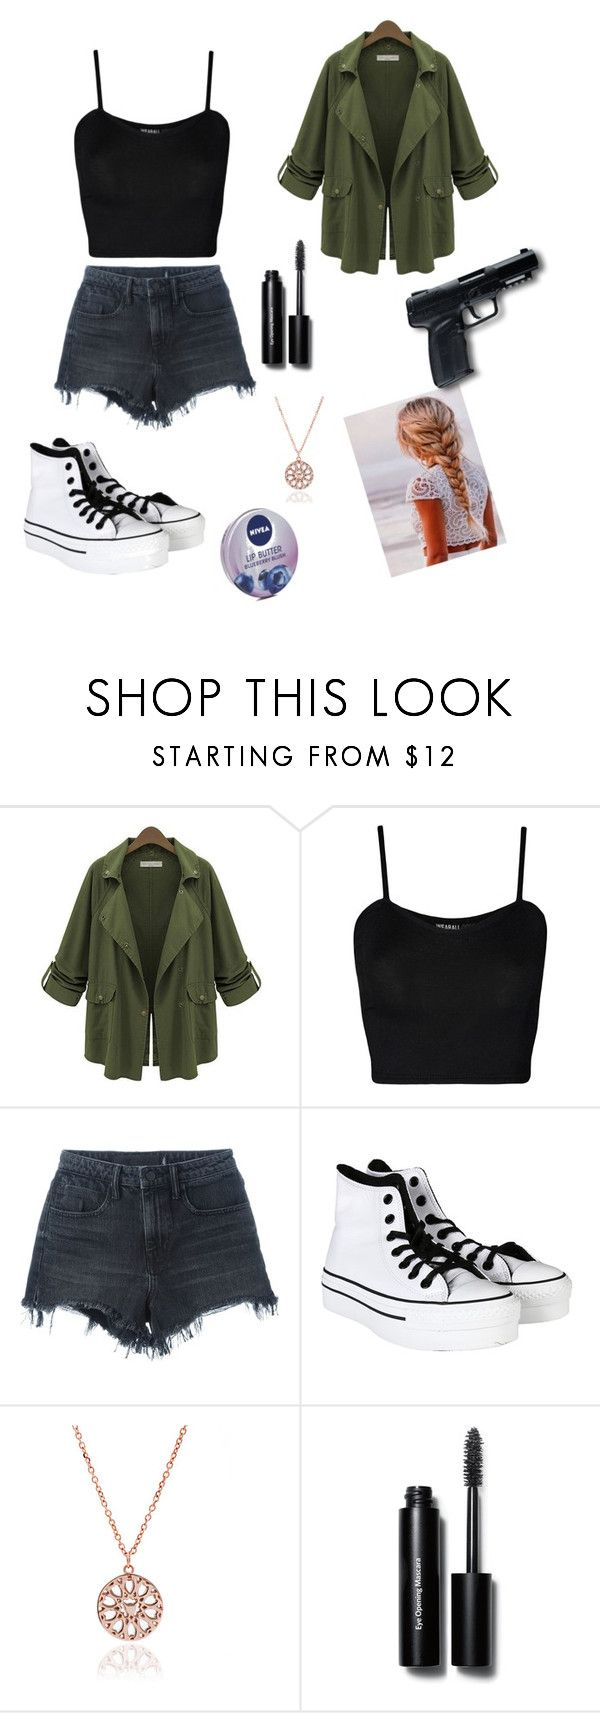 """""""Hunters  outfit!🔪🔫"""" by sophie295 ❤ liked on Polyvore featuring WearAll, Alexander Wang, Converse, All Black, Bobbi Brown Cosmetics, Nivea and supernaturalhunter"""